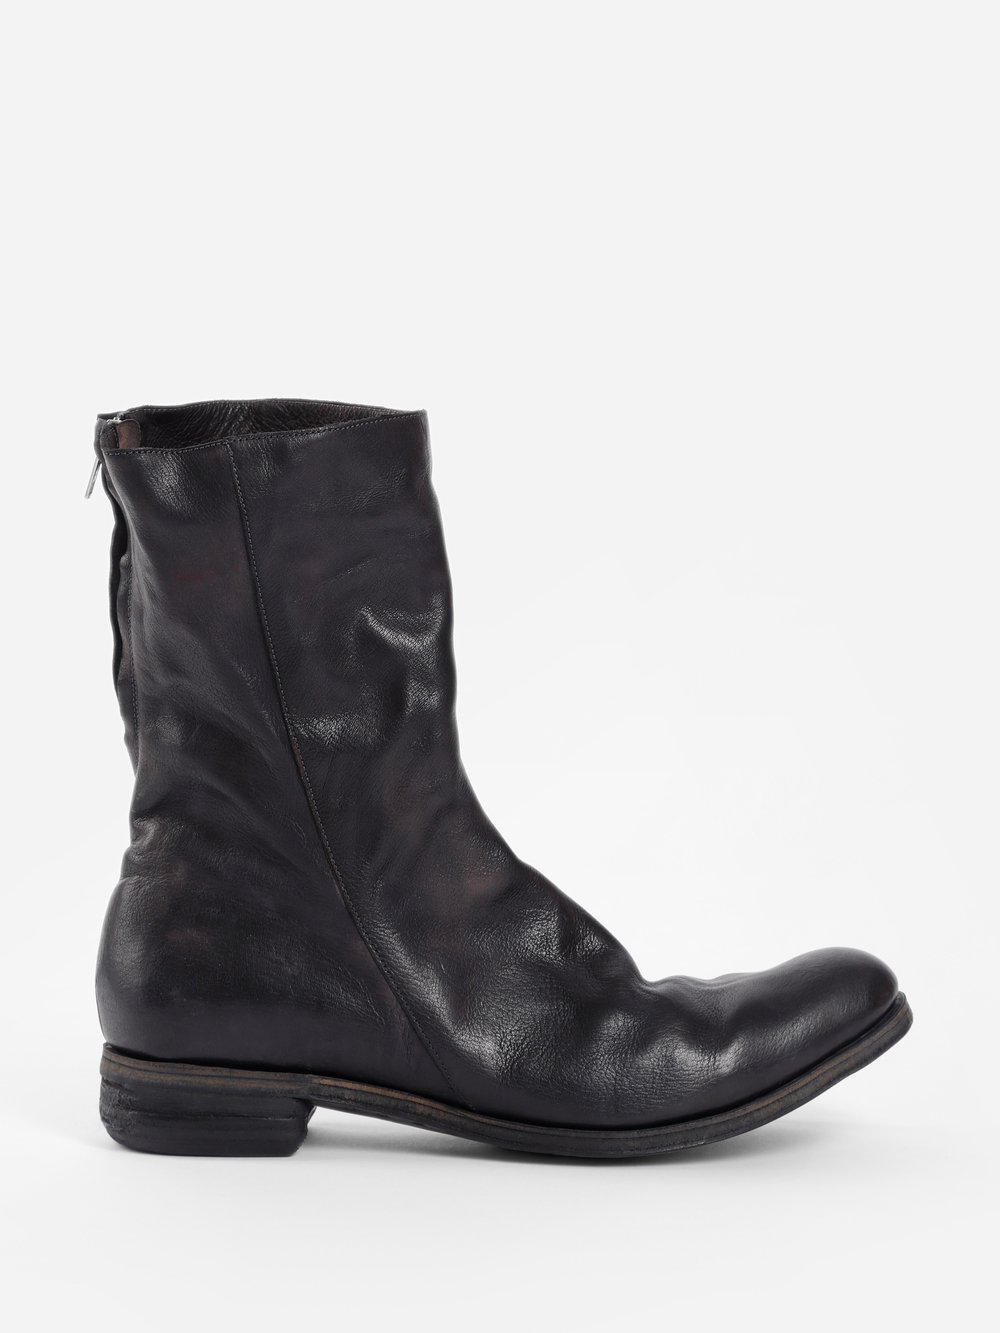 A DICIANNOVEVENTITRE MEN'S BLACK DOUBLE ZIP BOOTS